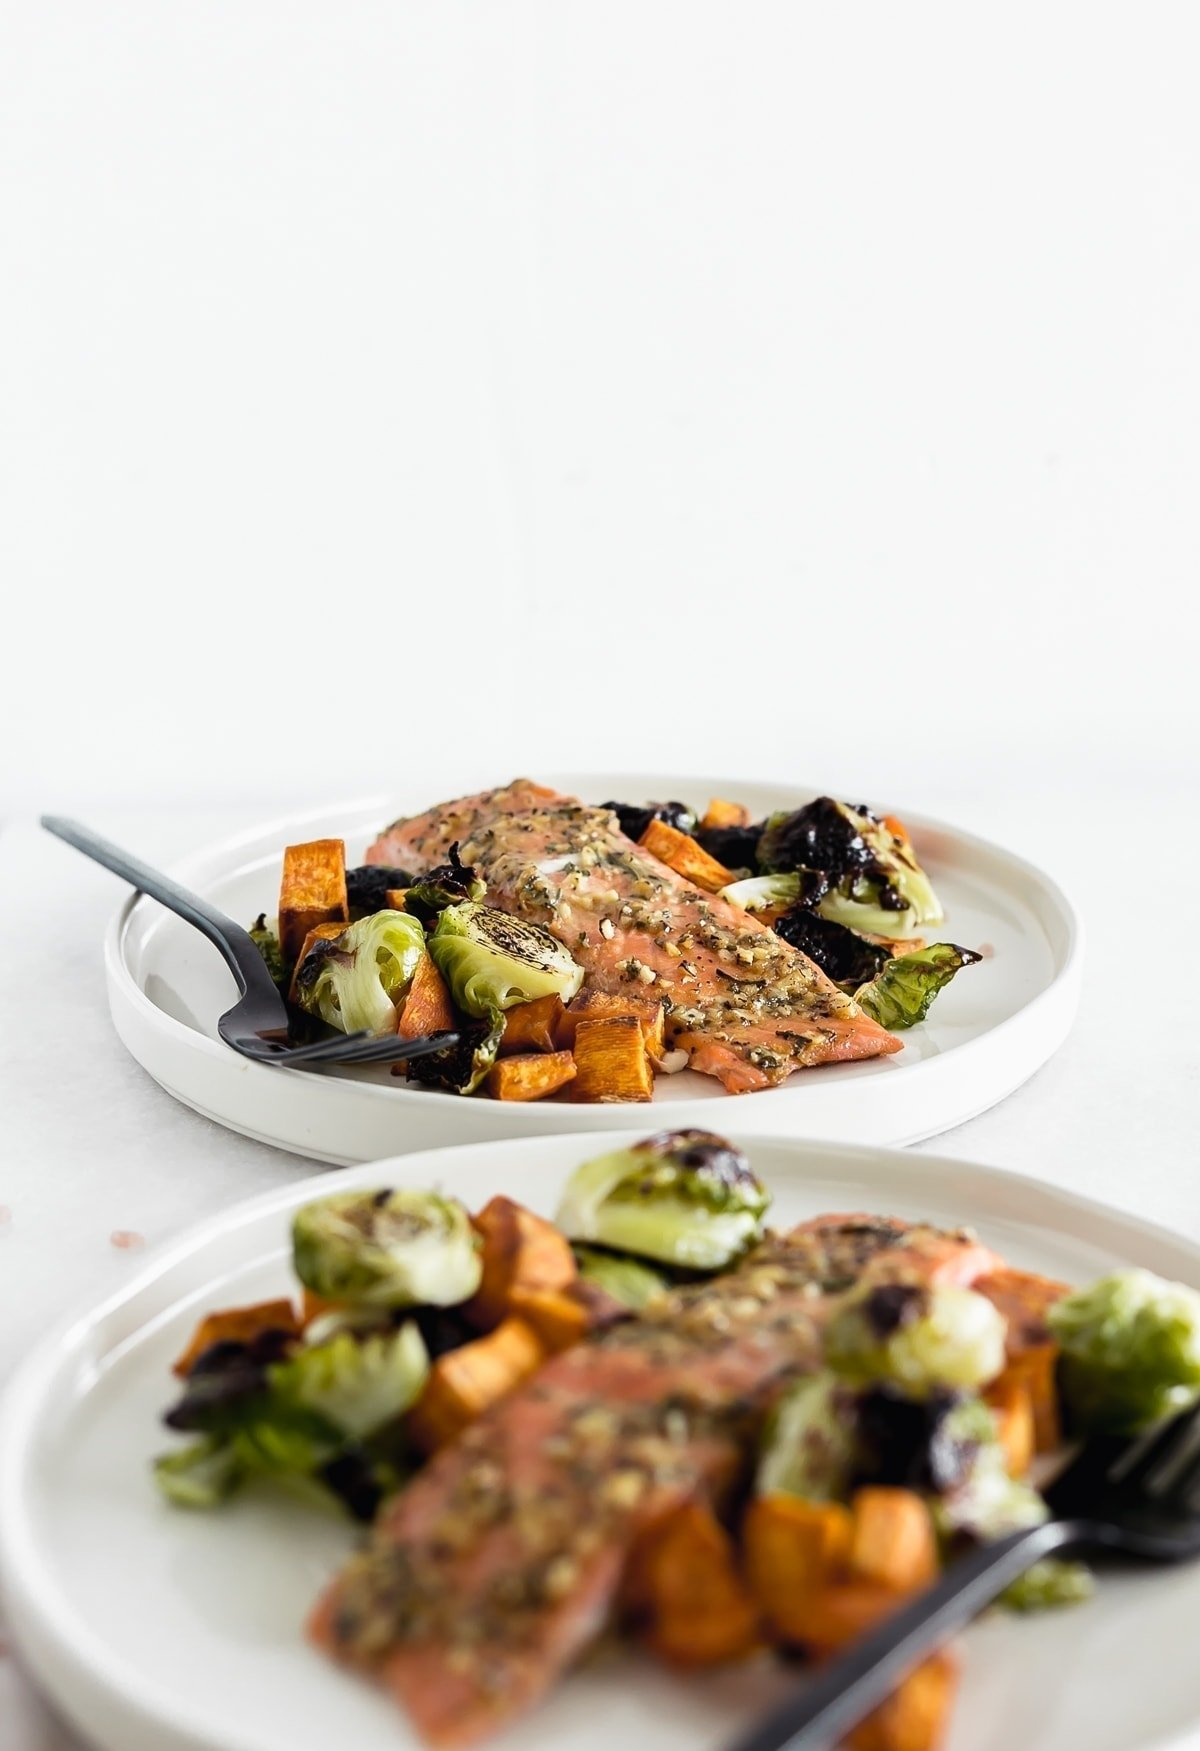 Sheet Pan Maple Dijon Salmon with Brussels Sprouts and Sweet Potatoes is an easy, healthy dinner with minimal cleanup, perfect for busy weeknights! (#glutenfree, #dairyfree) | #weeknightmeals #salmon #dinner| via livelytable.com